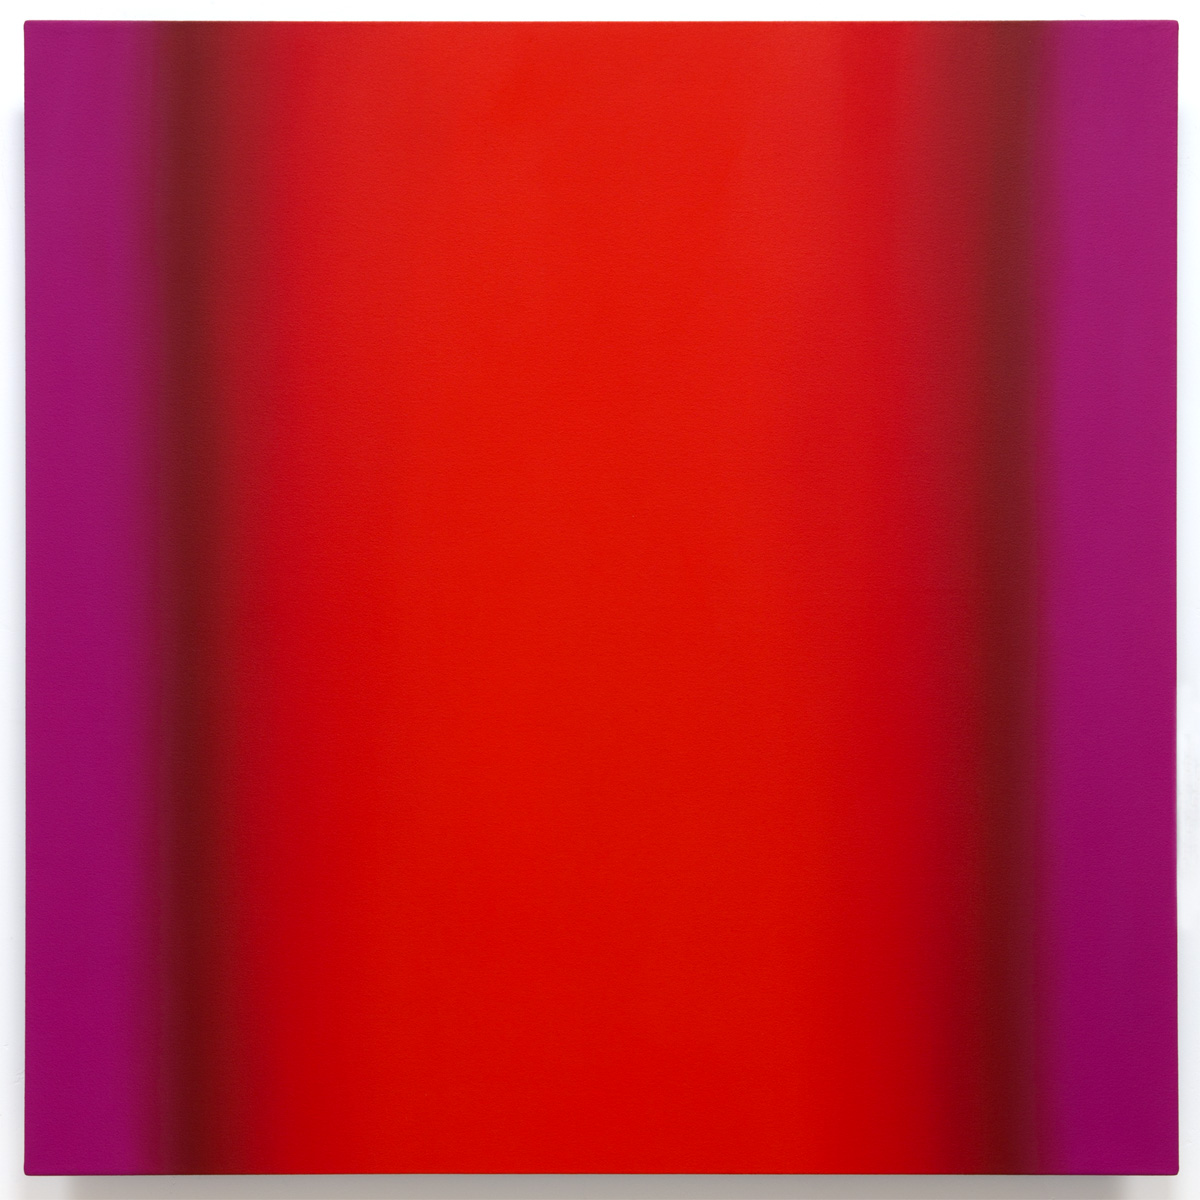 Red Green 1-S4848 (Red Magenta), Interplay Series, 2013, oil on canvas on custom beveled stretcher, 48 x 48 in. (122 x 122 cm.)